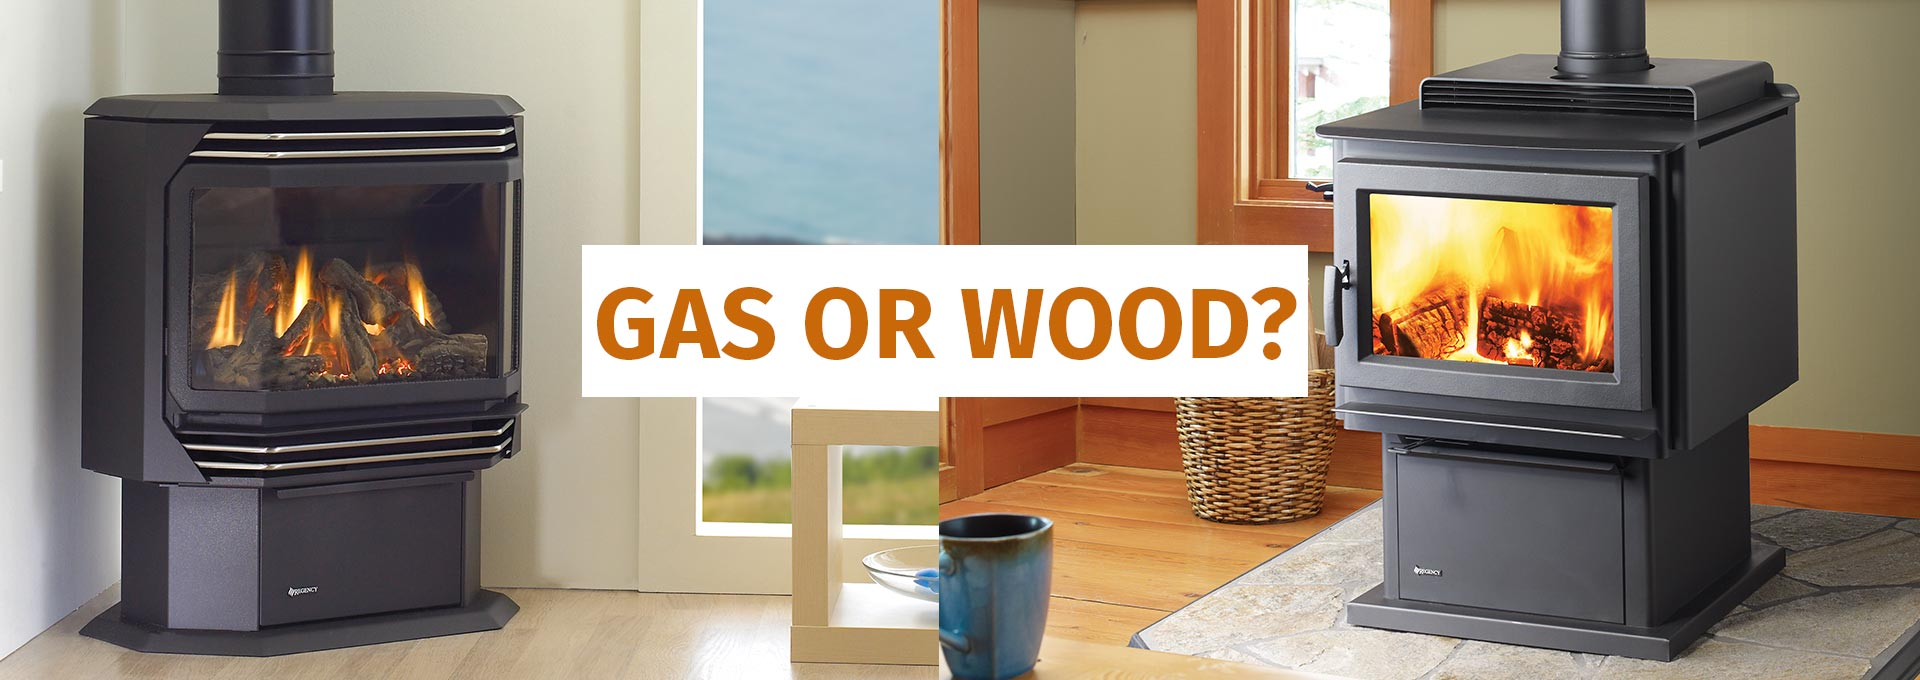 Wood Stove or Gas Stove – How to Choose?